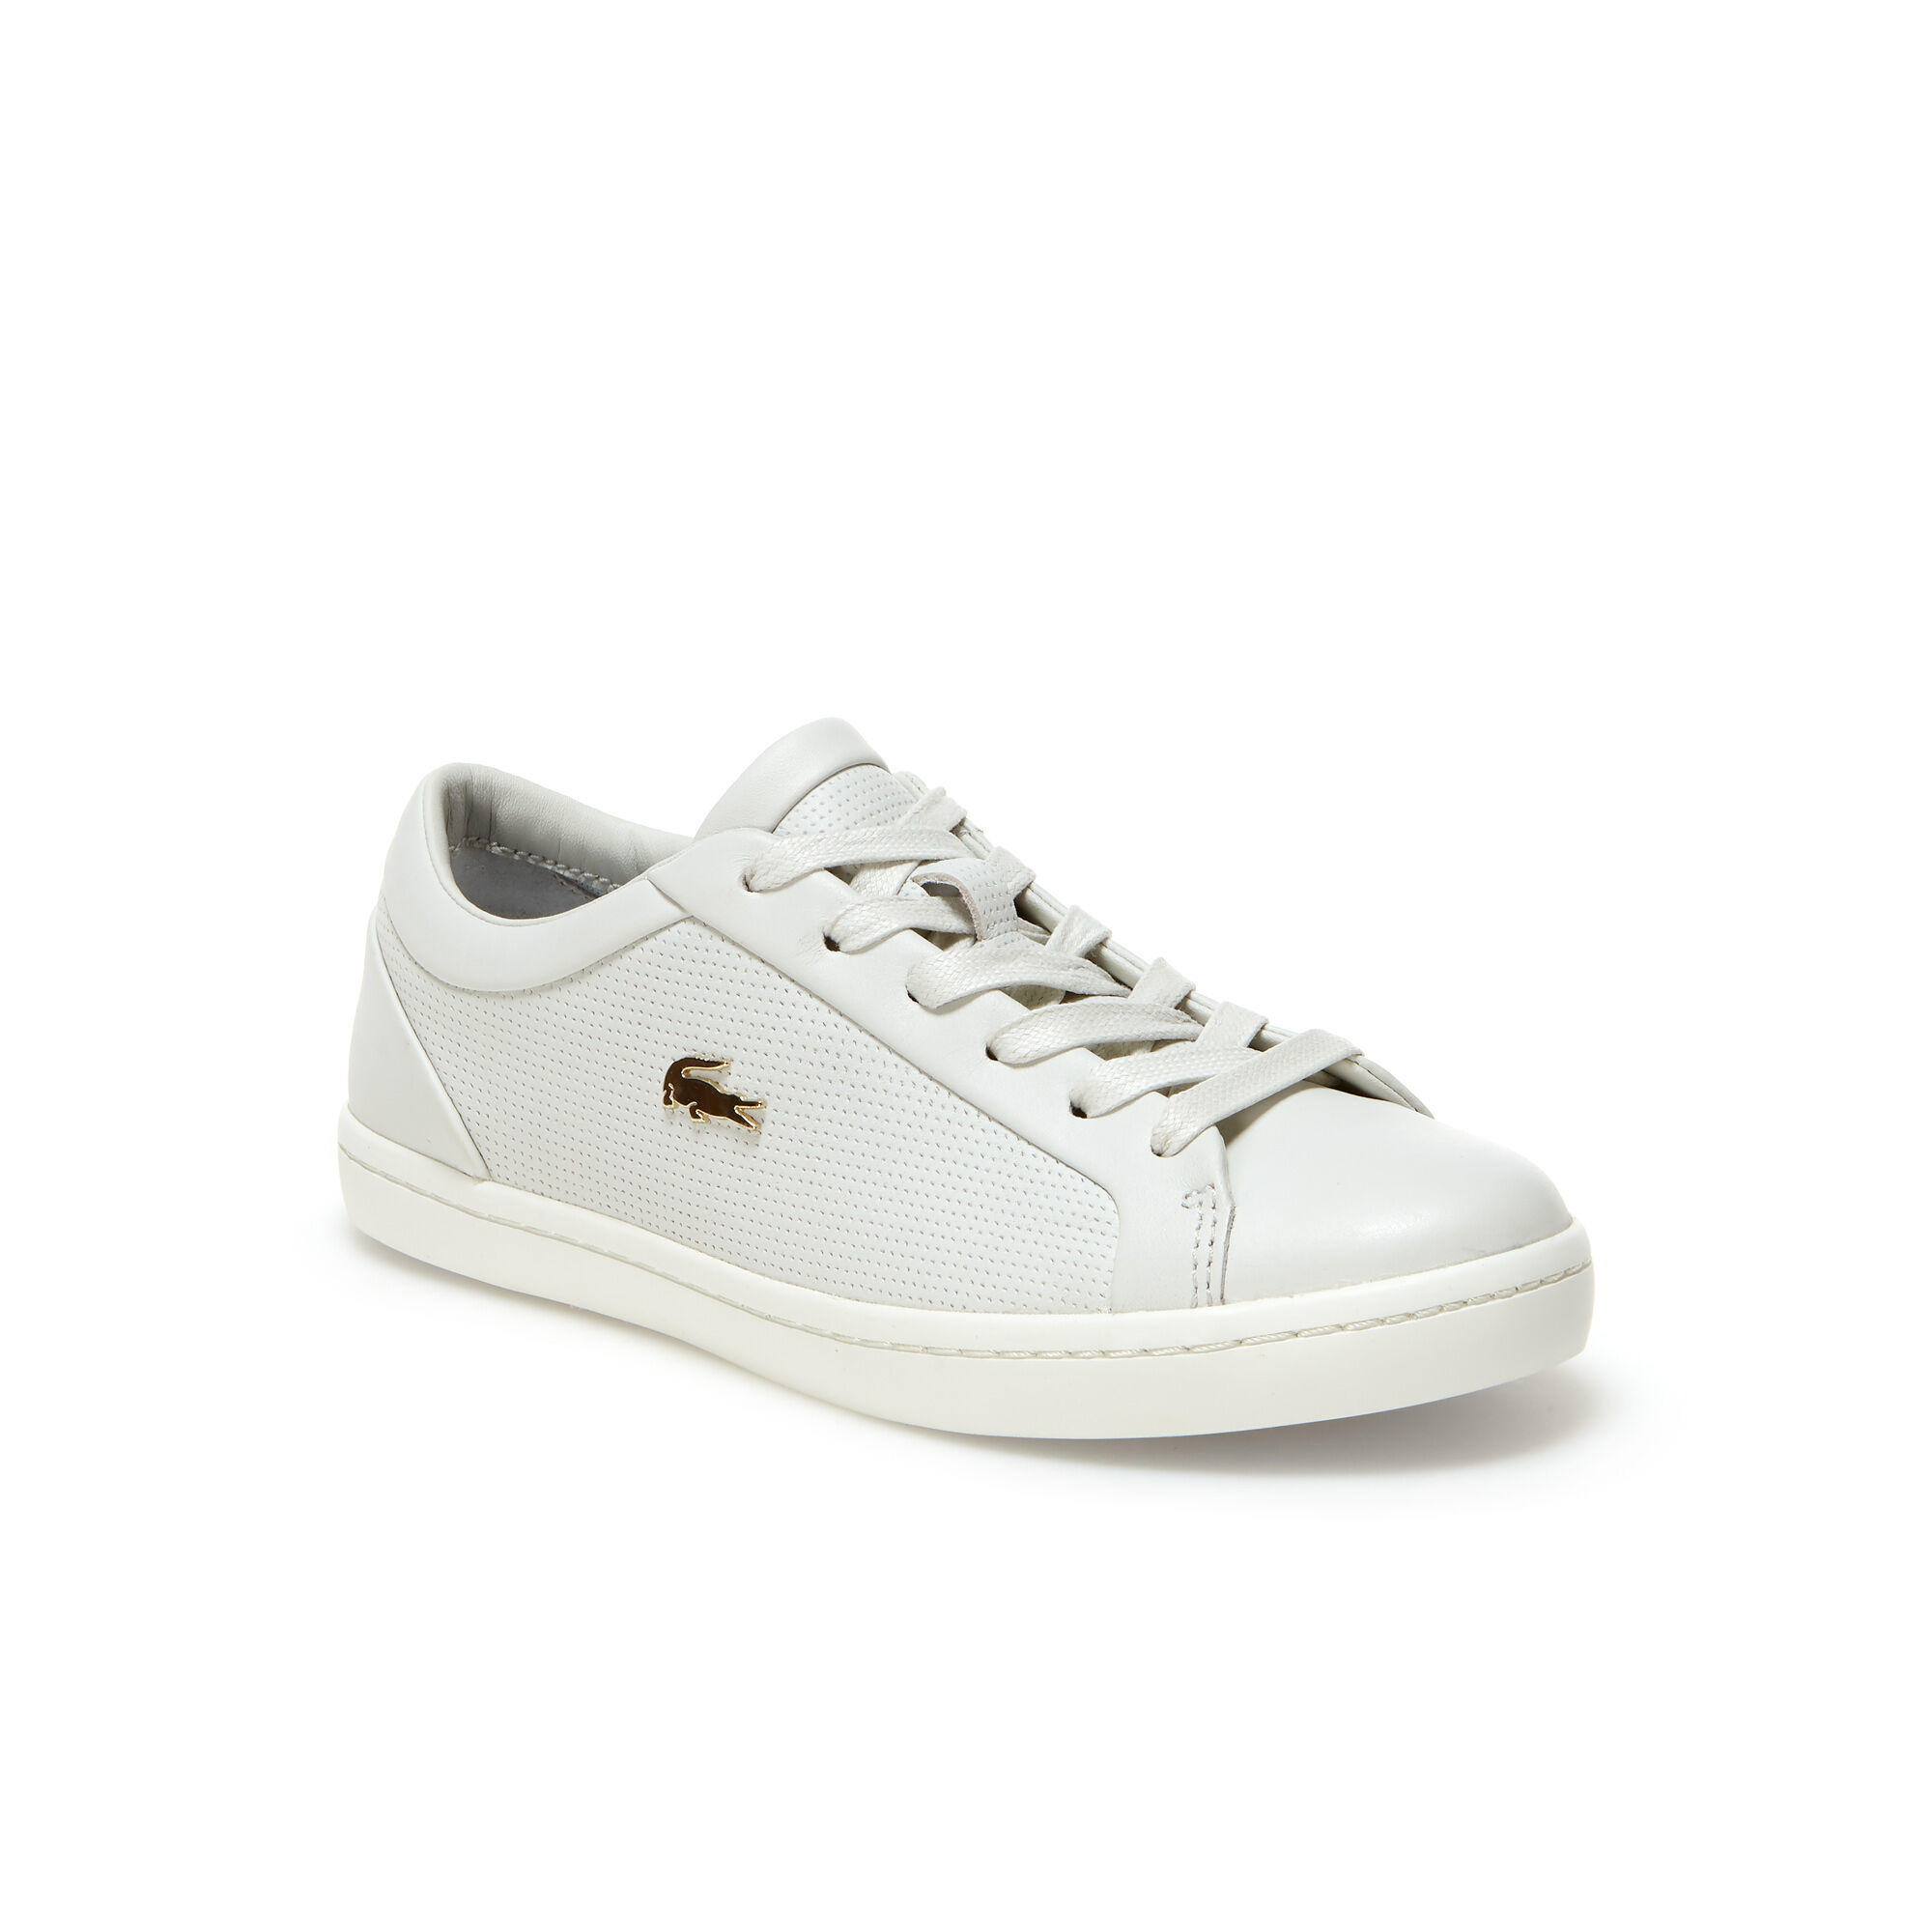 lacoste shoes 44004 movies 2018